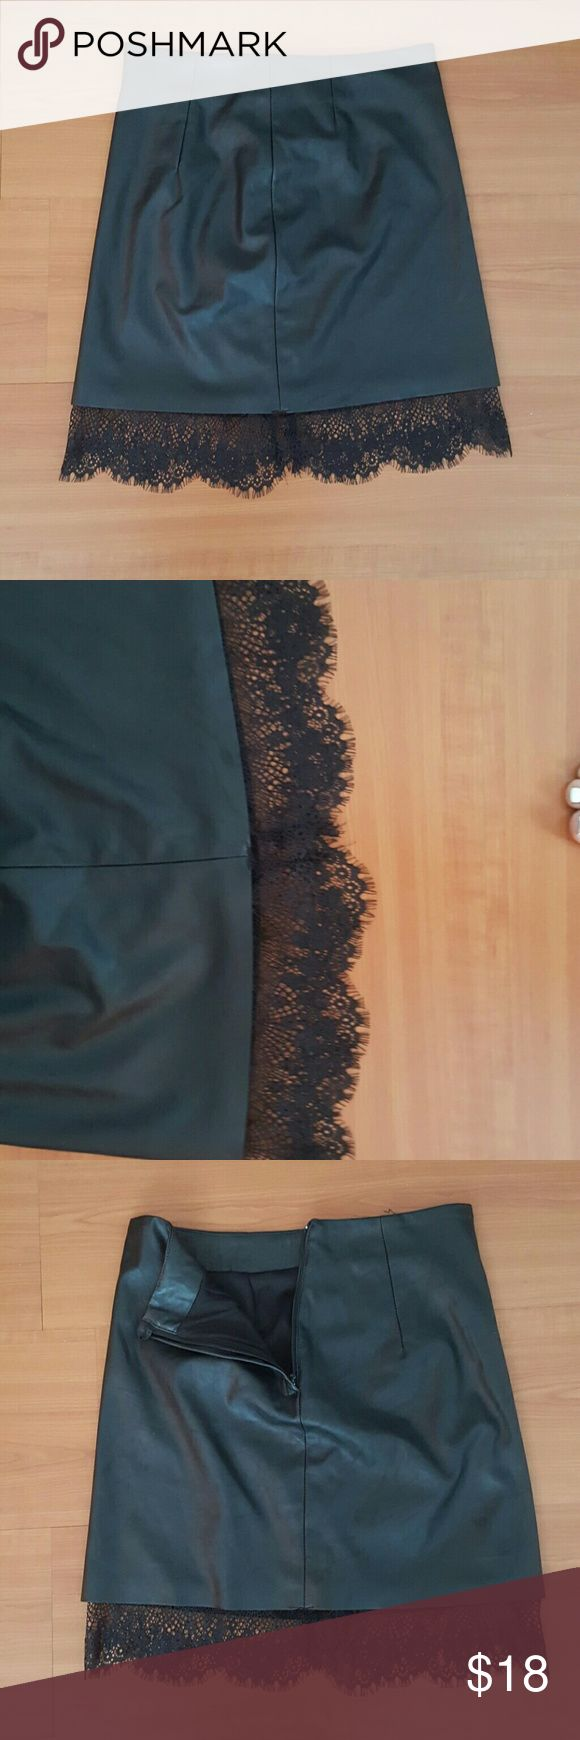 Black faux leather mini skirt Never worn!! Beautiful piece!! Super stretchy material for great fit ..the lace in tbe bottom makes it look so good!! H&M Skirts Mini